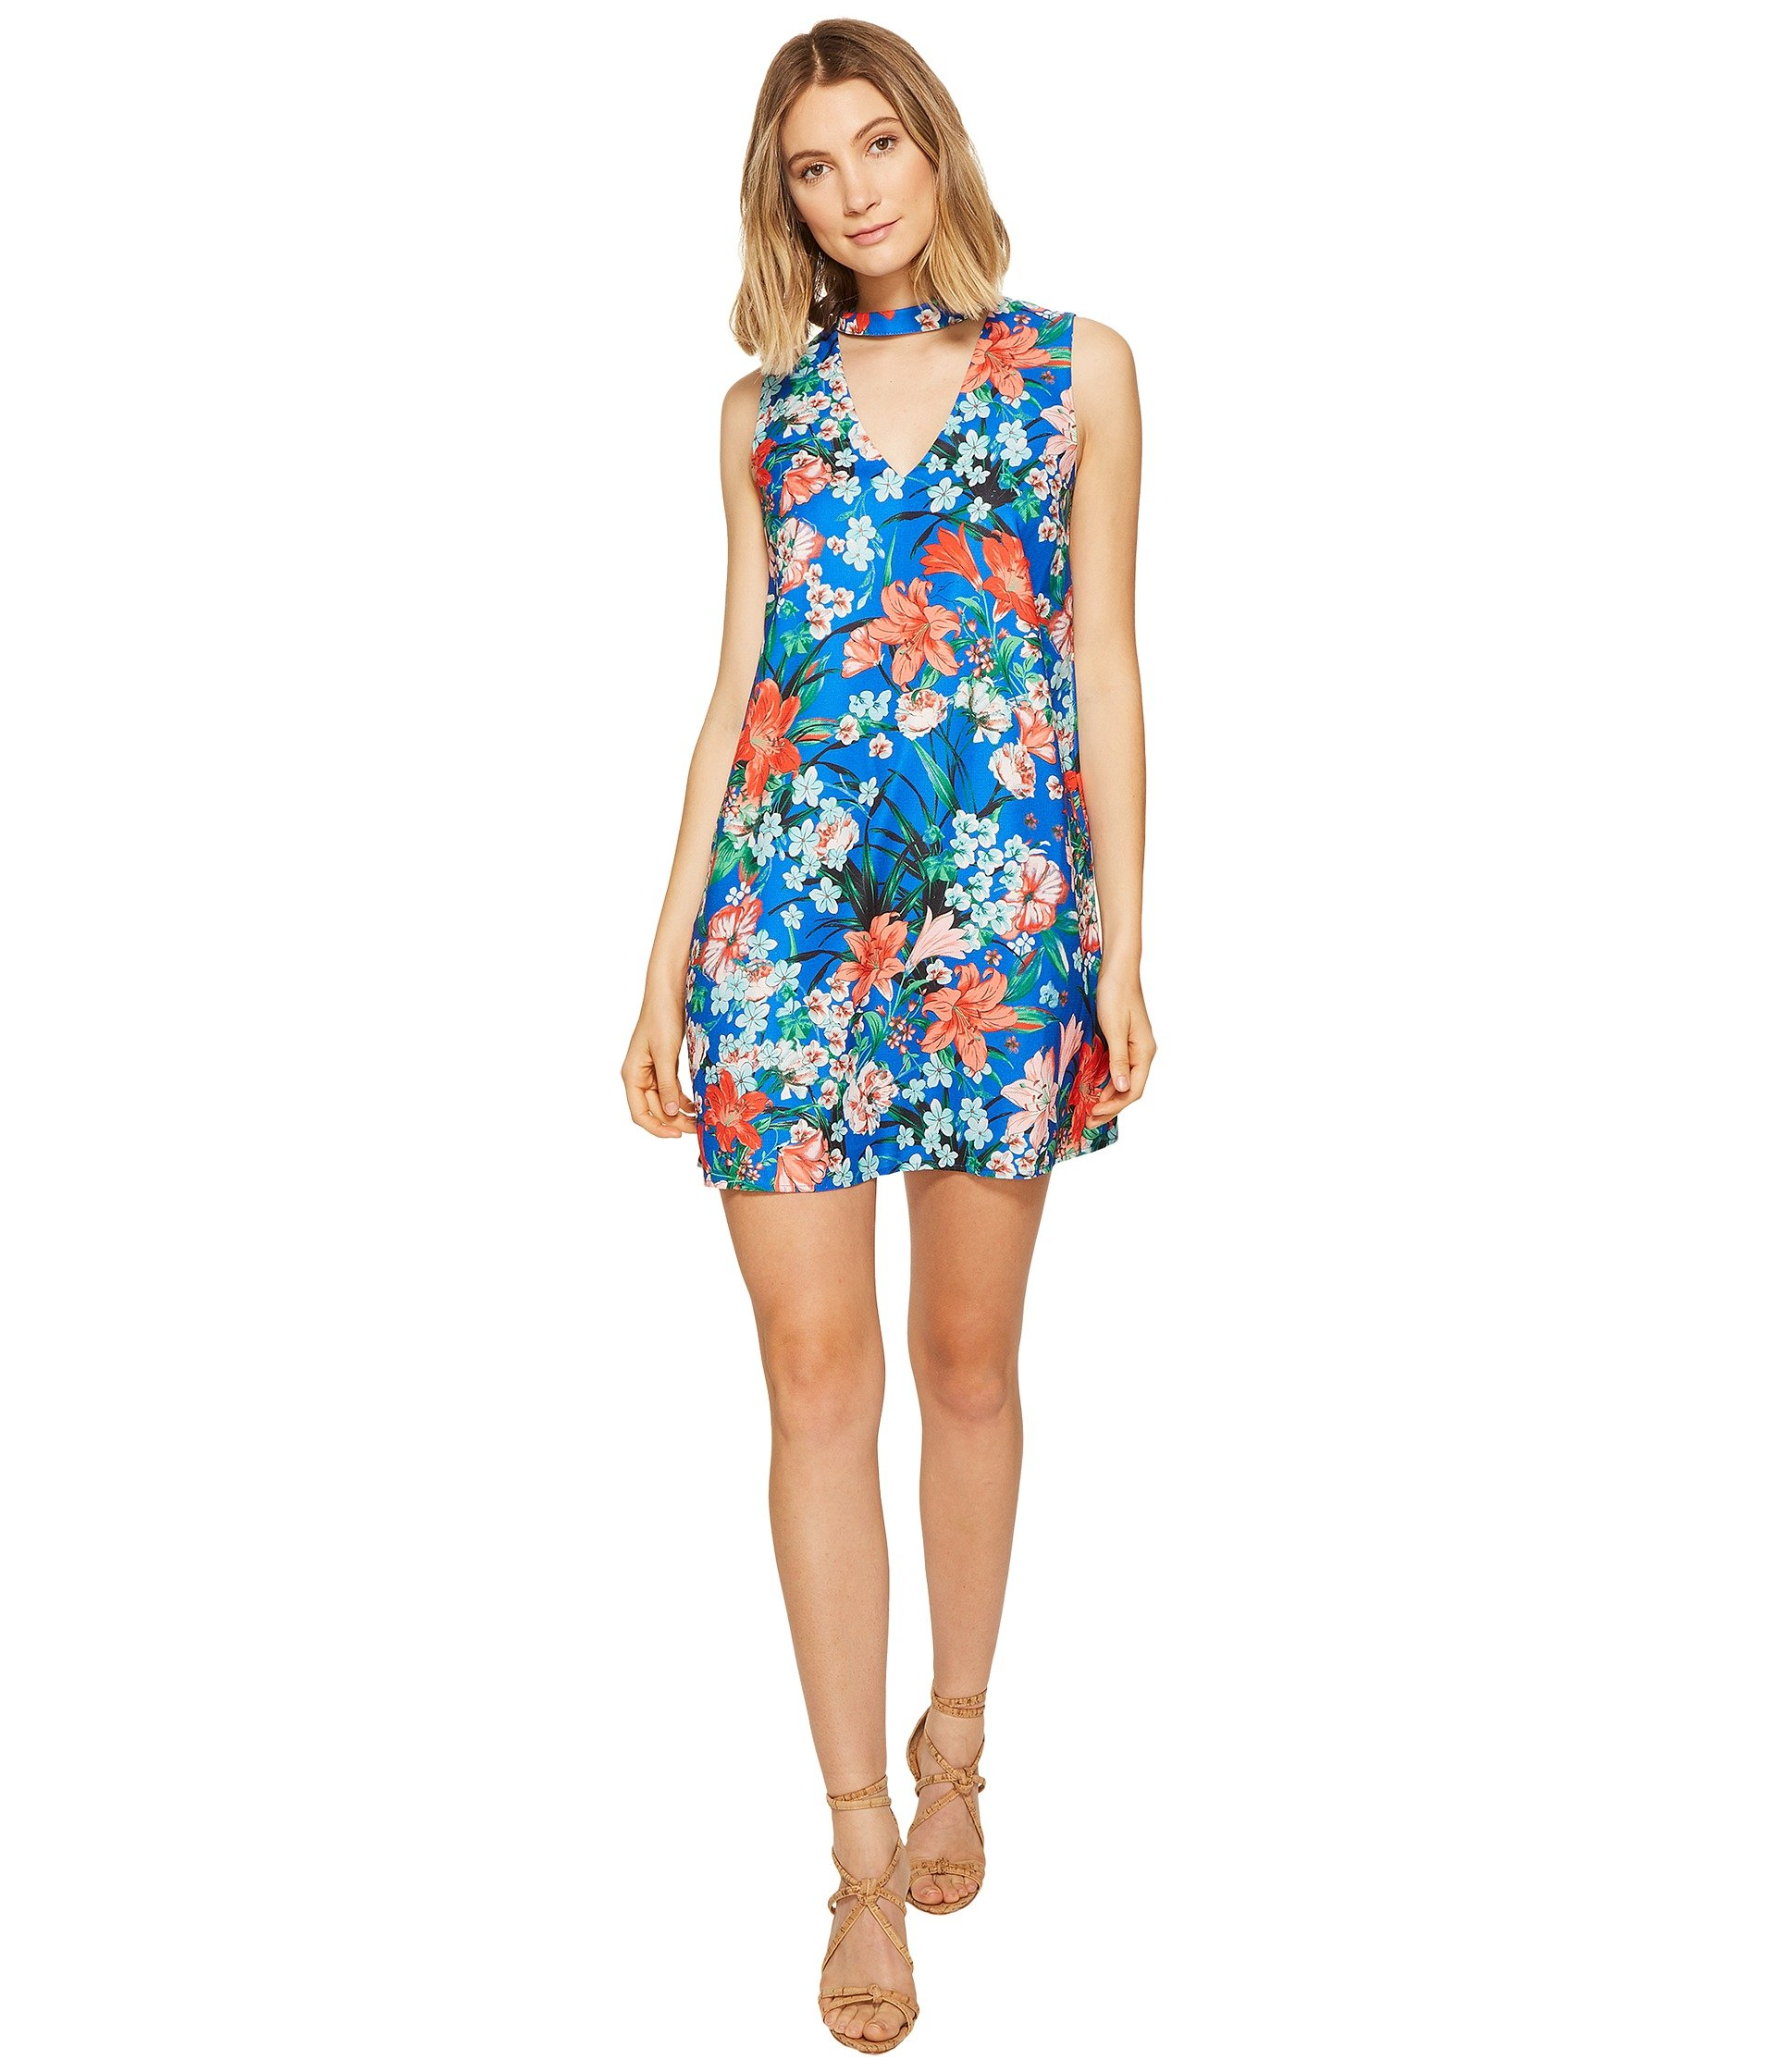 Vestido para Mujer XOXO Printed Sleeveless Choker Dress  + XOXO en VeoyCompro.net